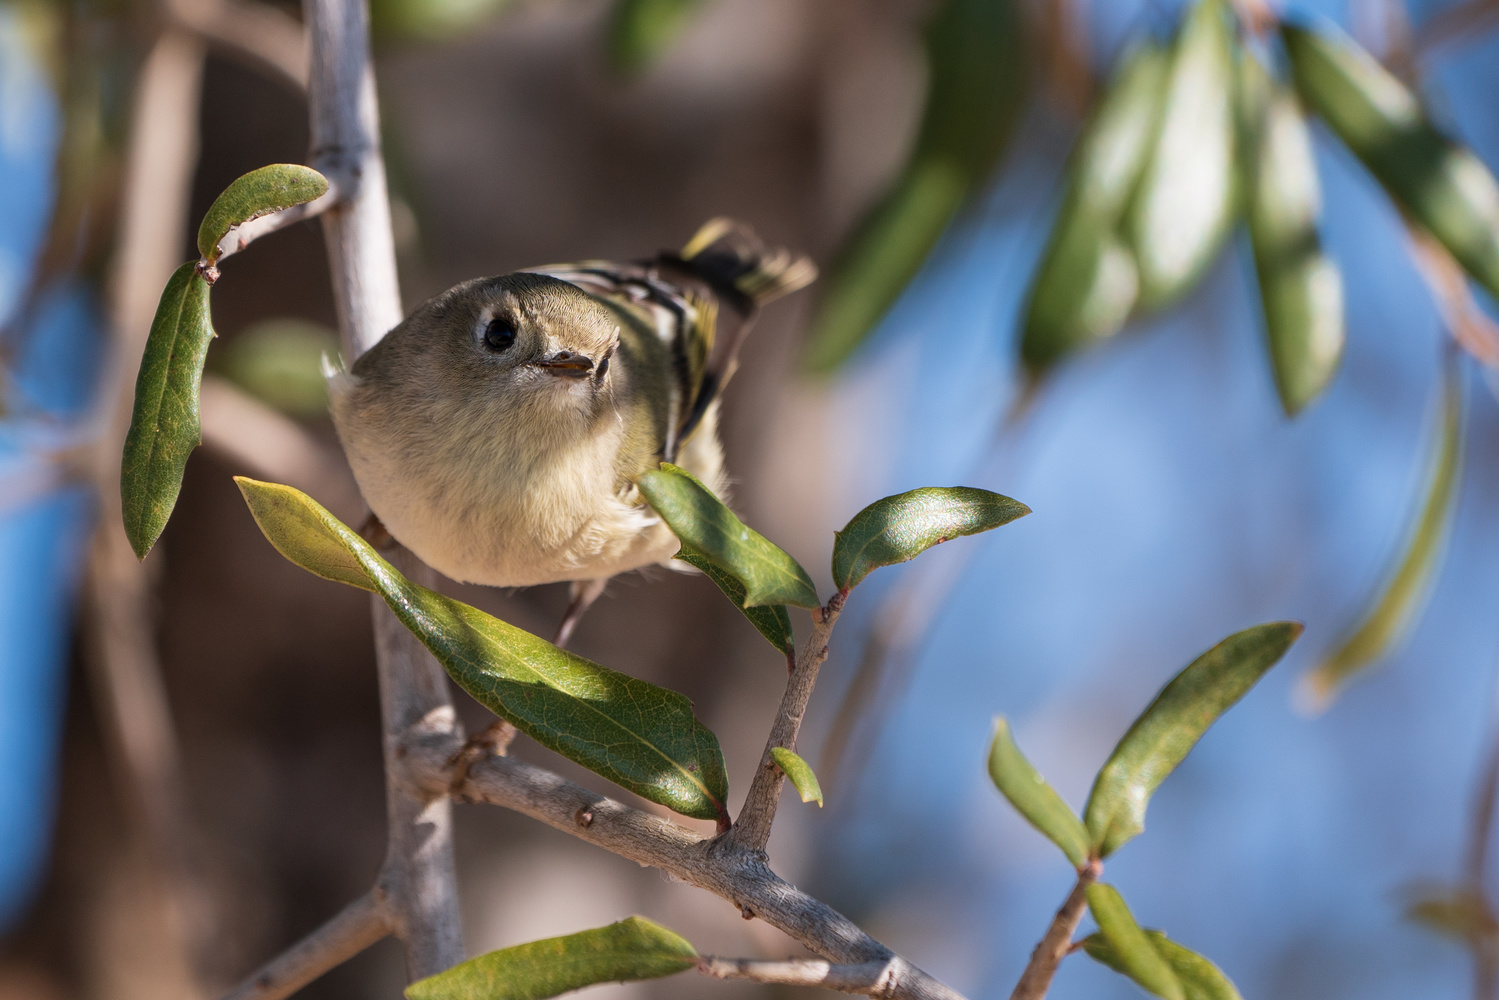 A Ruby-crowned Kinglet smiling at the camera by Timothy Harris